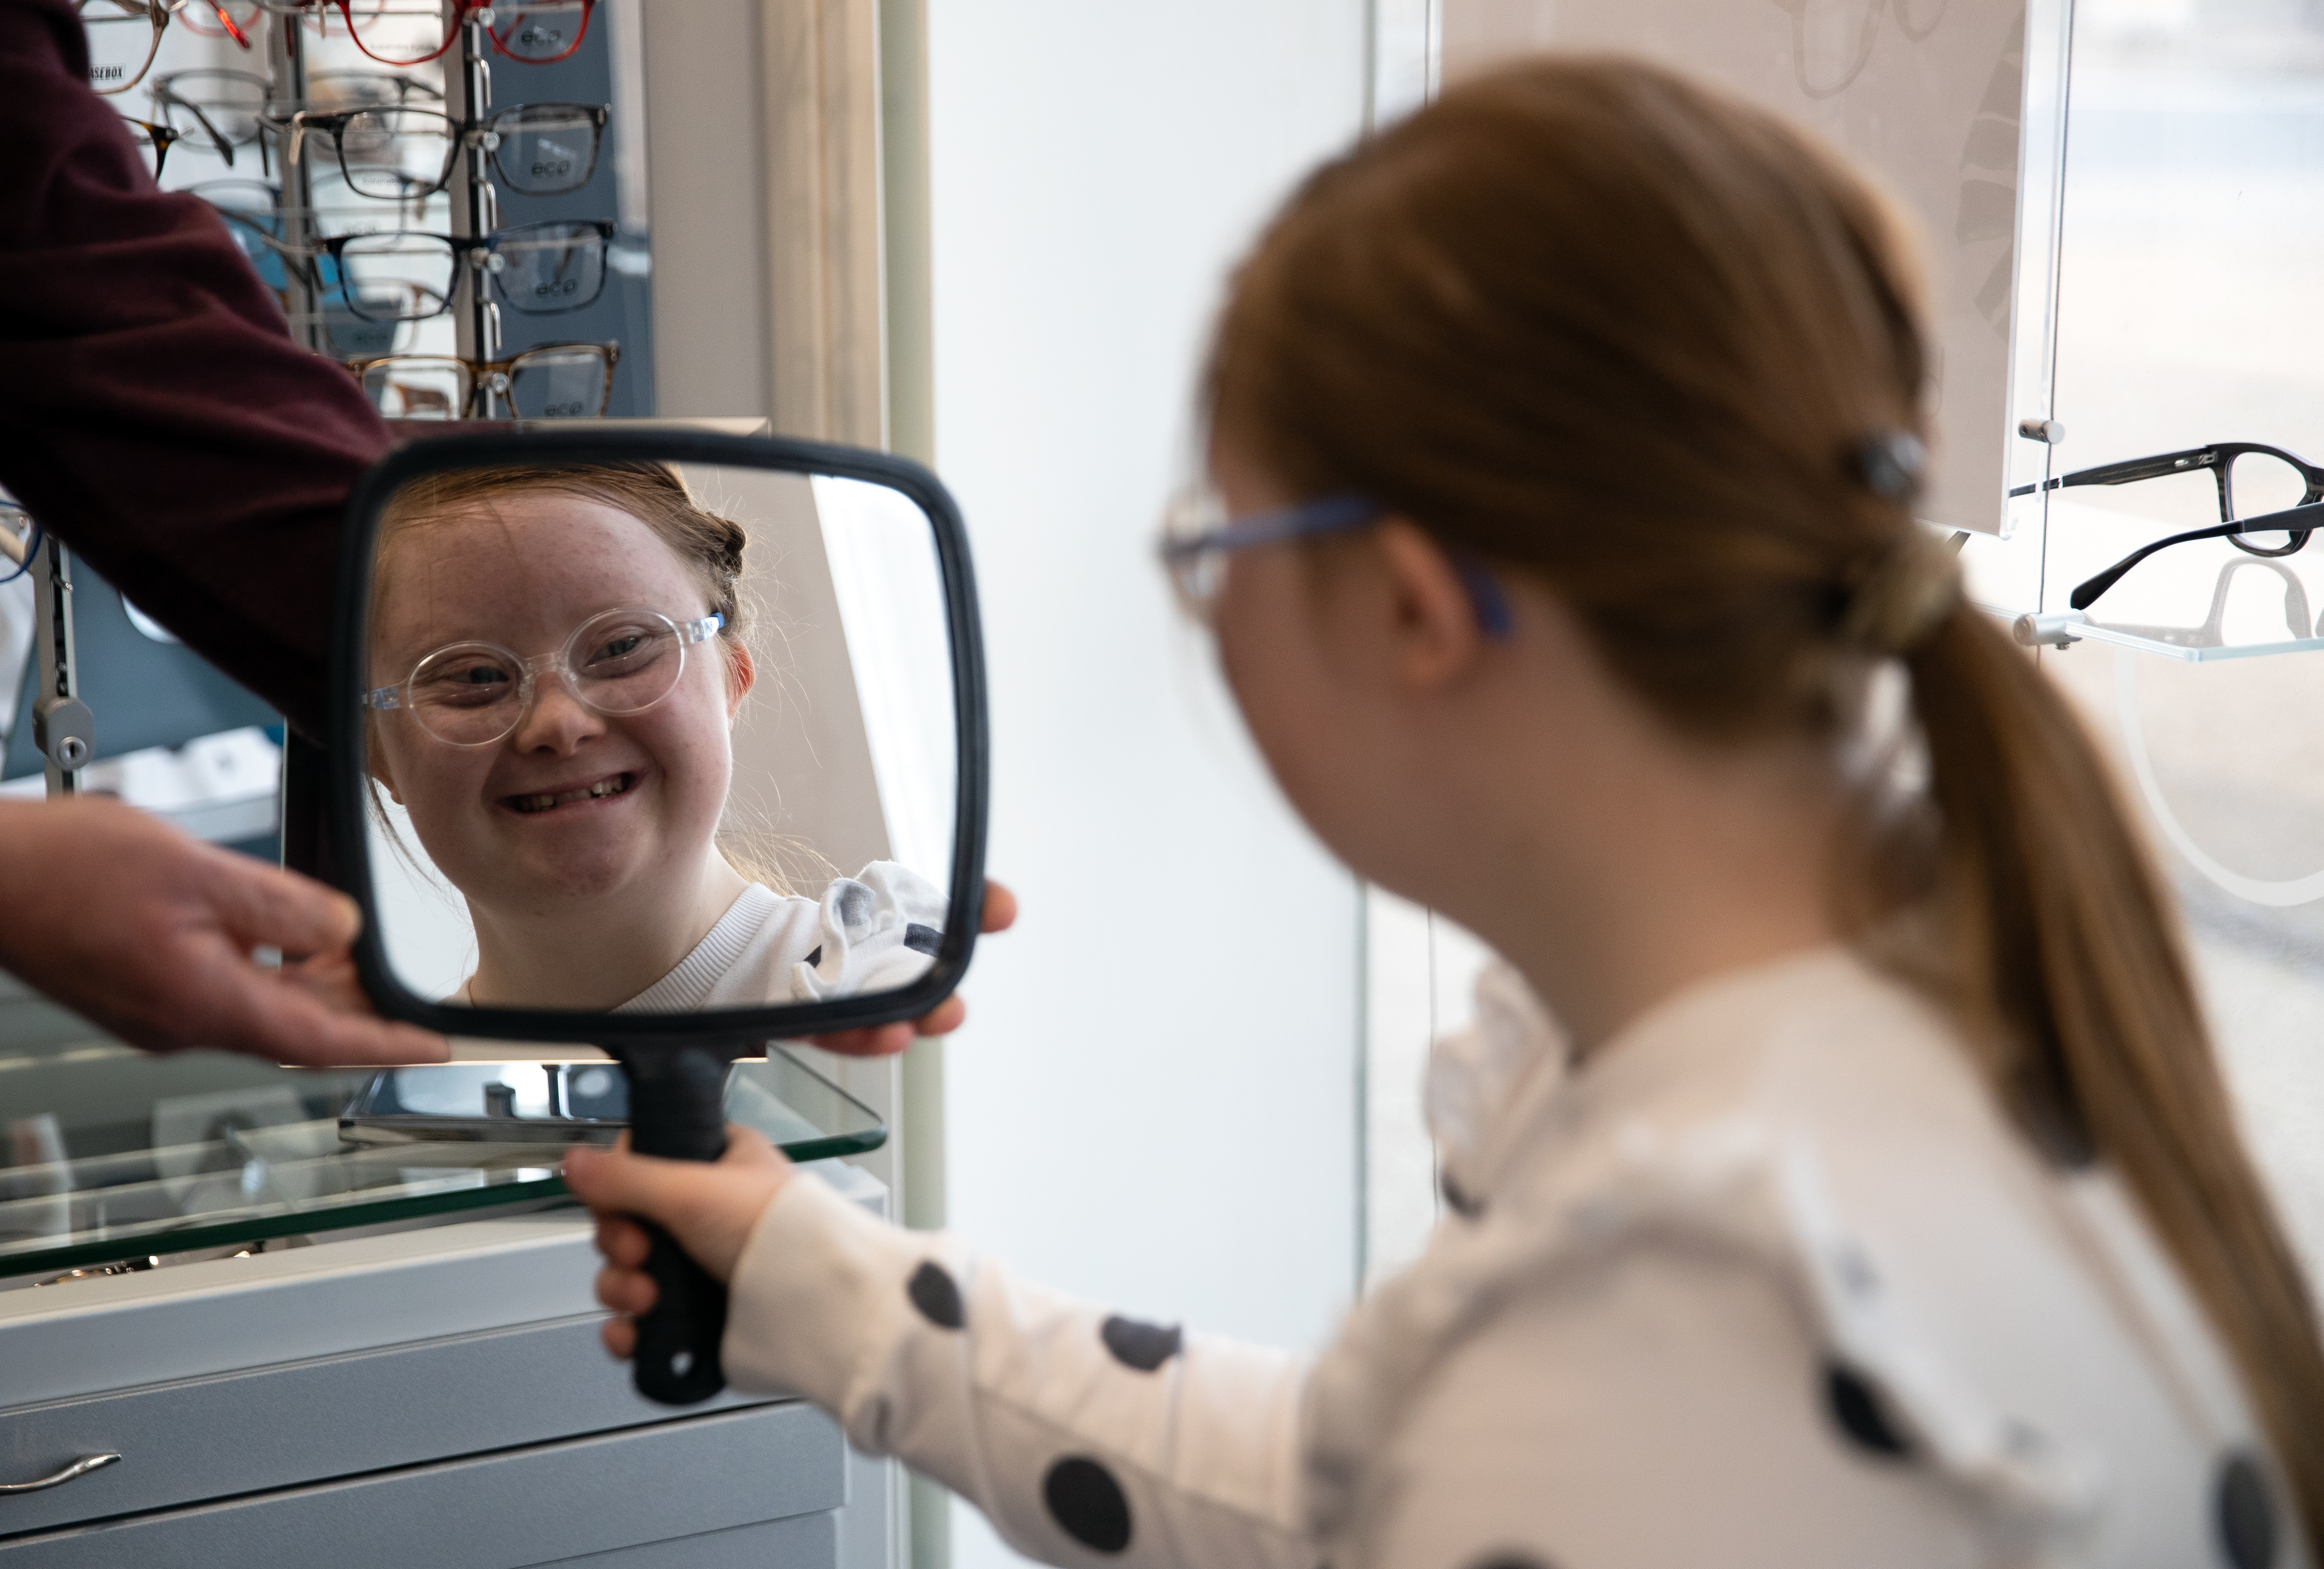 <p>Rosie Johnson, 14, looks in a mirror as she tries on her new glasses at England's first Downs Syndrome eye clinic, at the University of Portsmouth in Hampshire, which has begun offering specialised treatment to people with Down Syndrome, saving them from having to travel to the UK's only other specialist centre in Wales. Picture date: Wednesday May 26, 2021.</p>